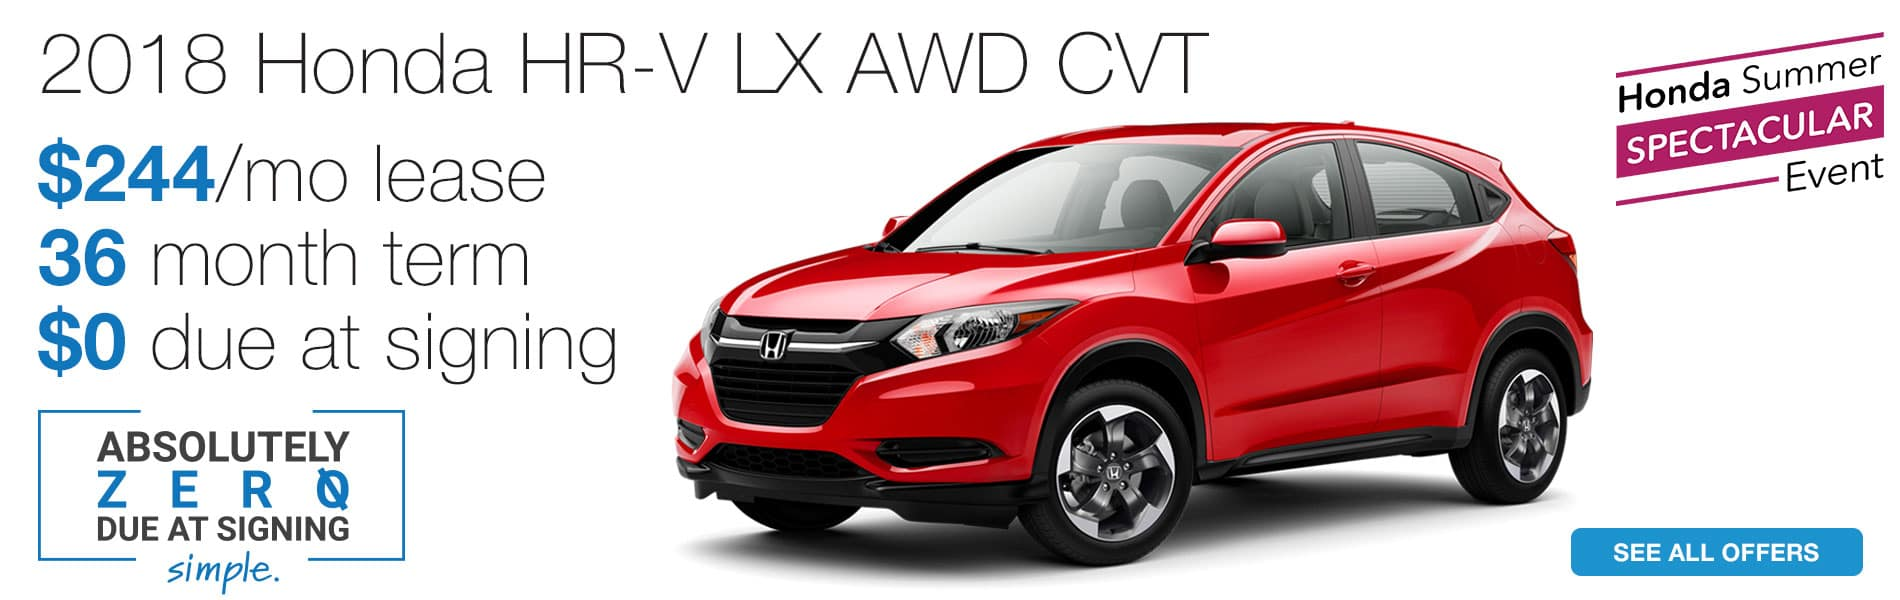 Lease a 2018 Honda HR-V LX AWD CVT for $244 per month with absolutely $0 due at signing